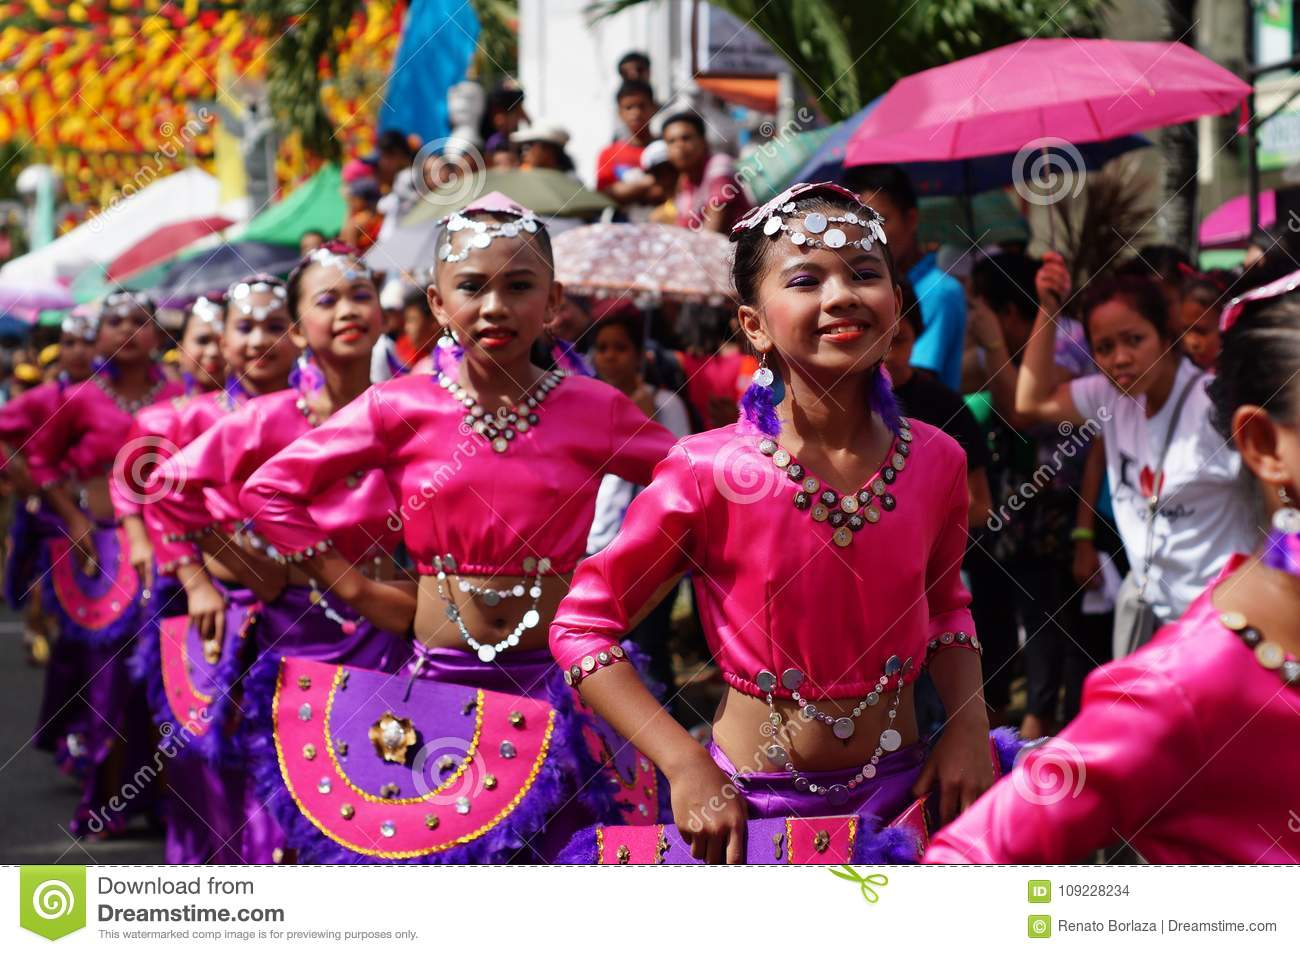 A group of carnival dancers in various costumes dance in delight.